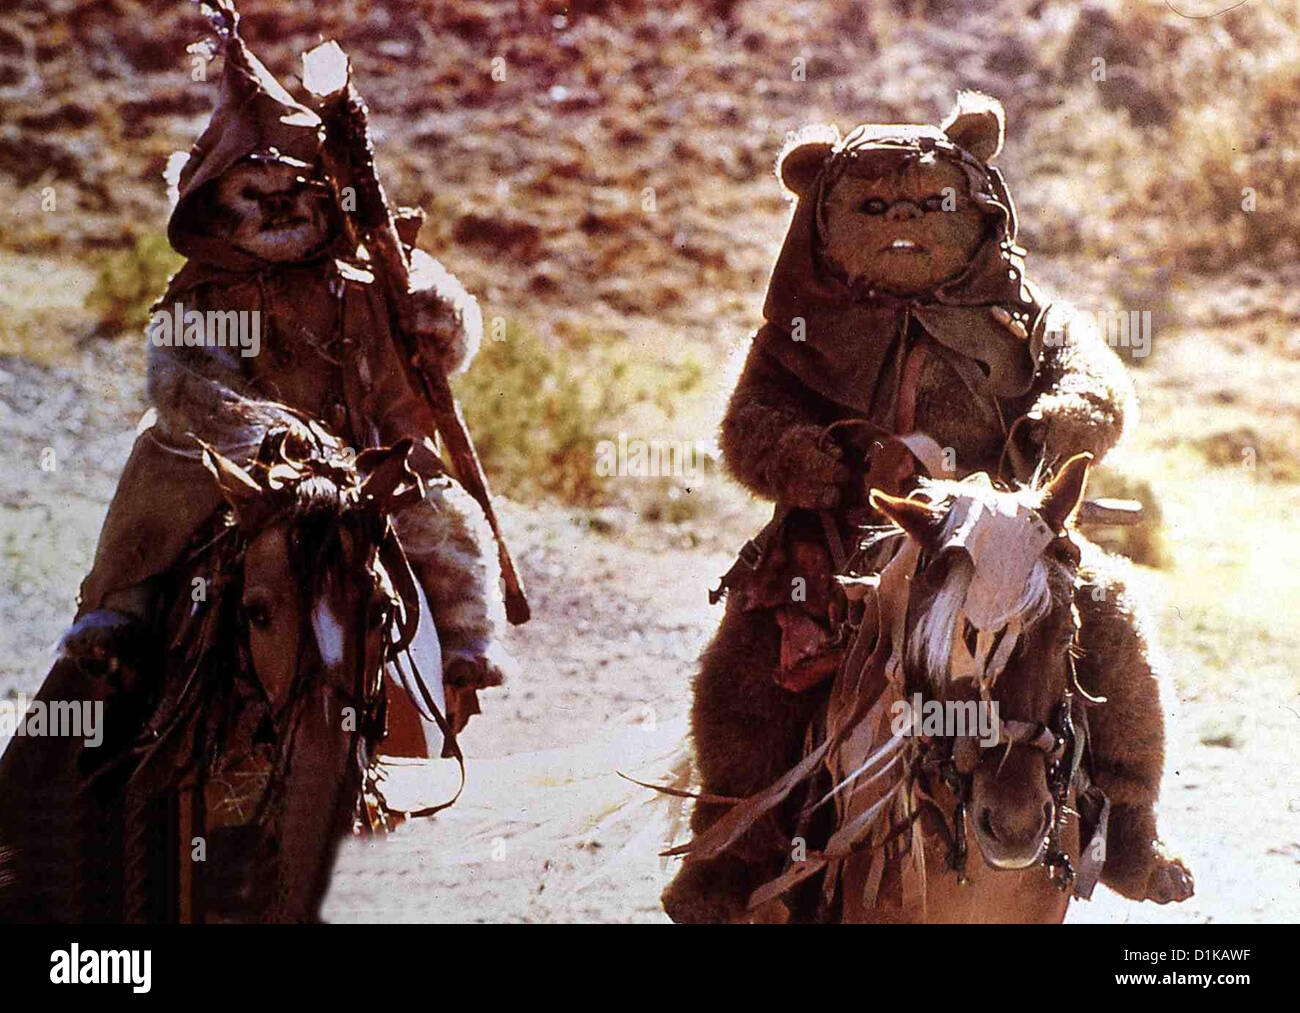 Ewok High Resolution Stock Photography And Images Alamy